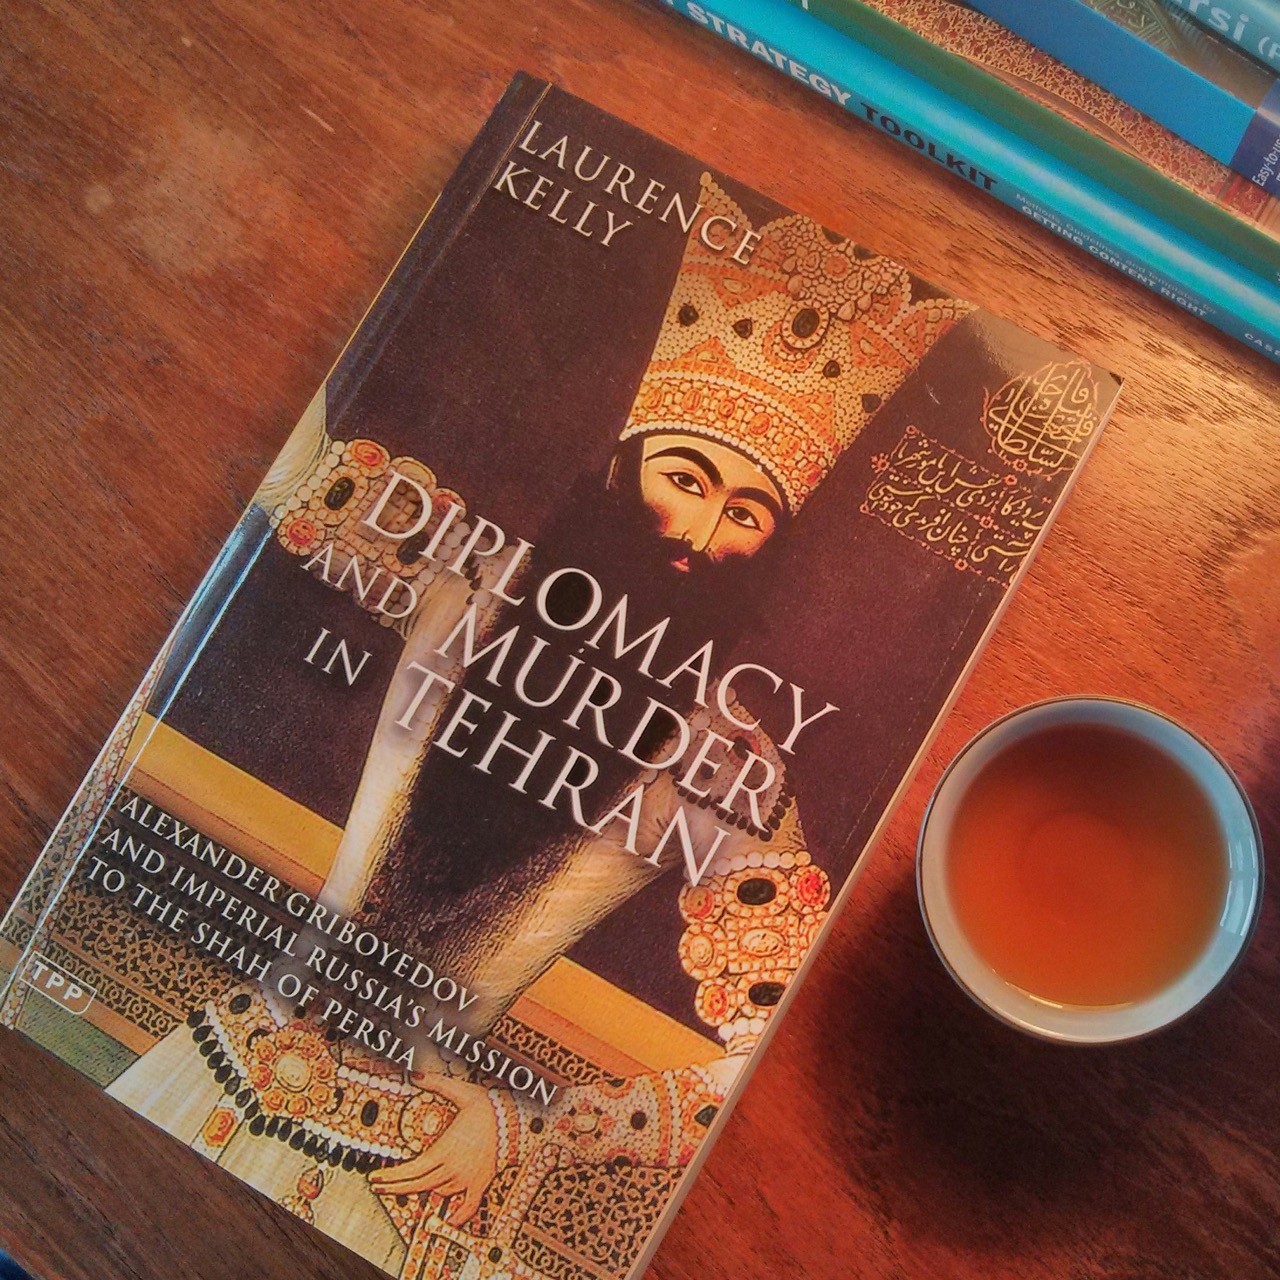 Reading-list-Diplomacy-Murder-Tehran.jpg